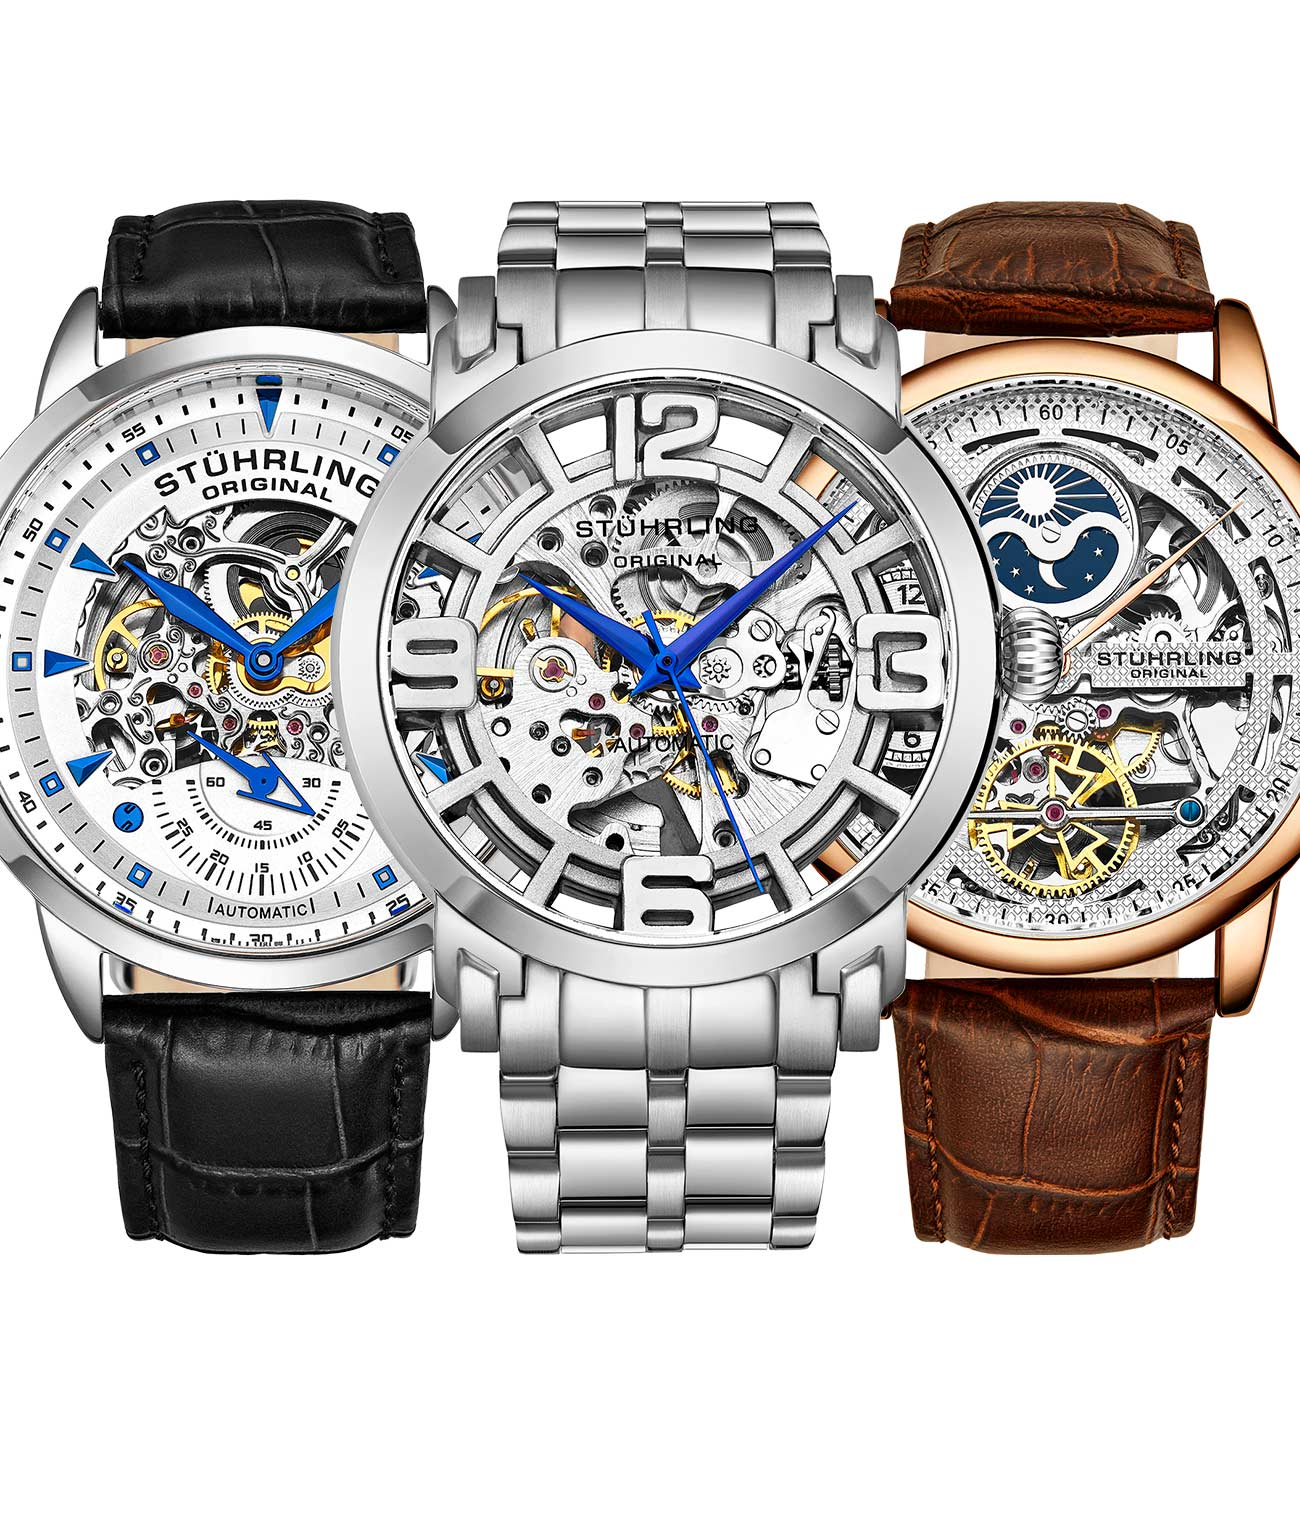 Triple Set Skeleton-Pack Designed to Suit Every Aspect of Your Life, matched with a 10 slot Traveling Watch Case